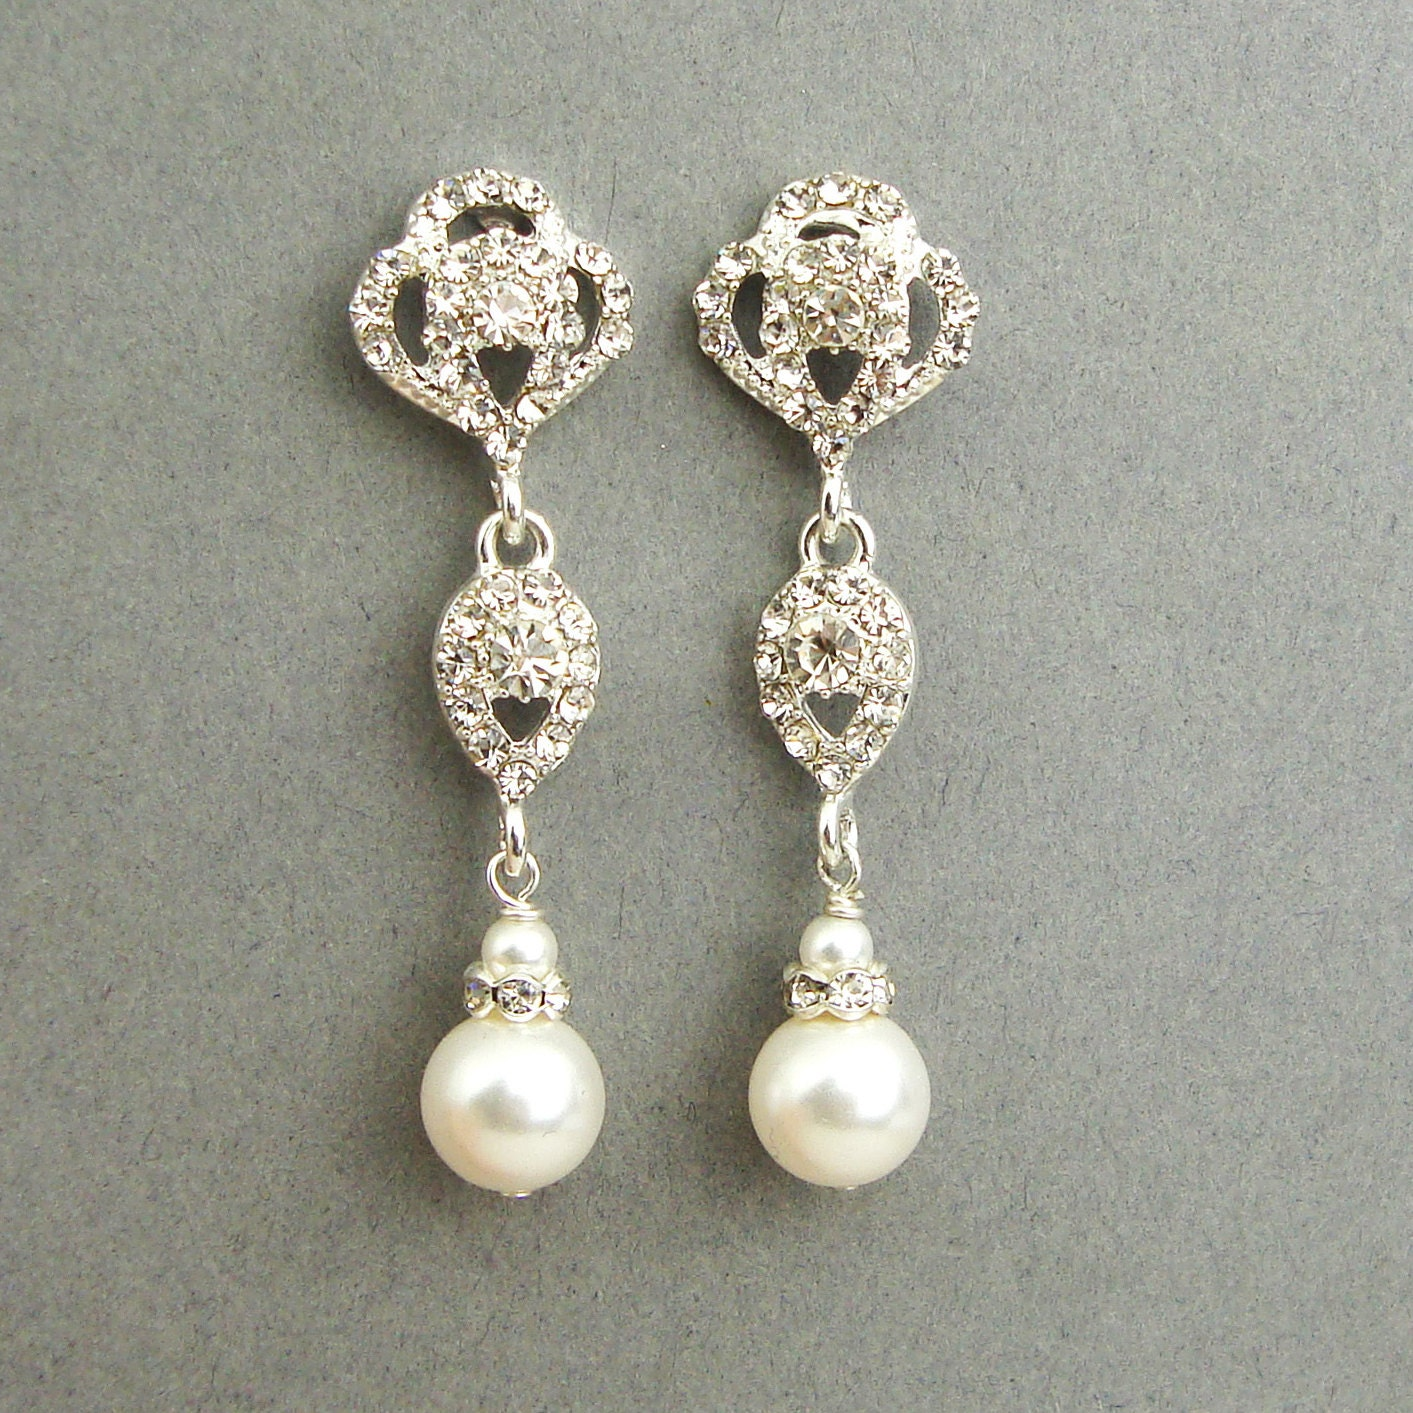 Swarovski Crystal and Pearl Bridal Earrings Vintage Style